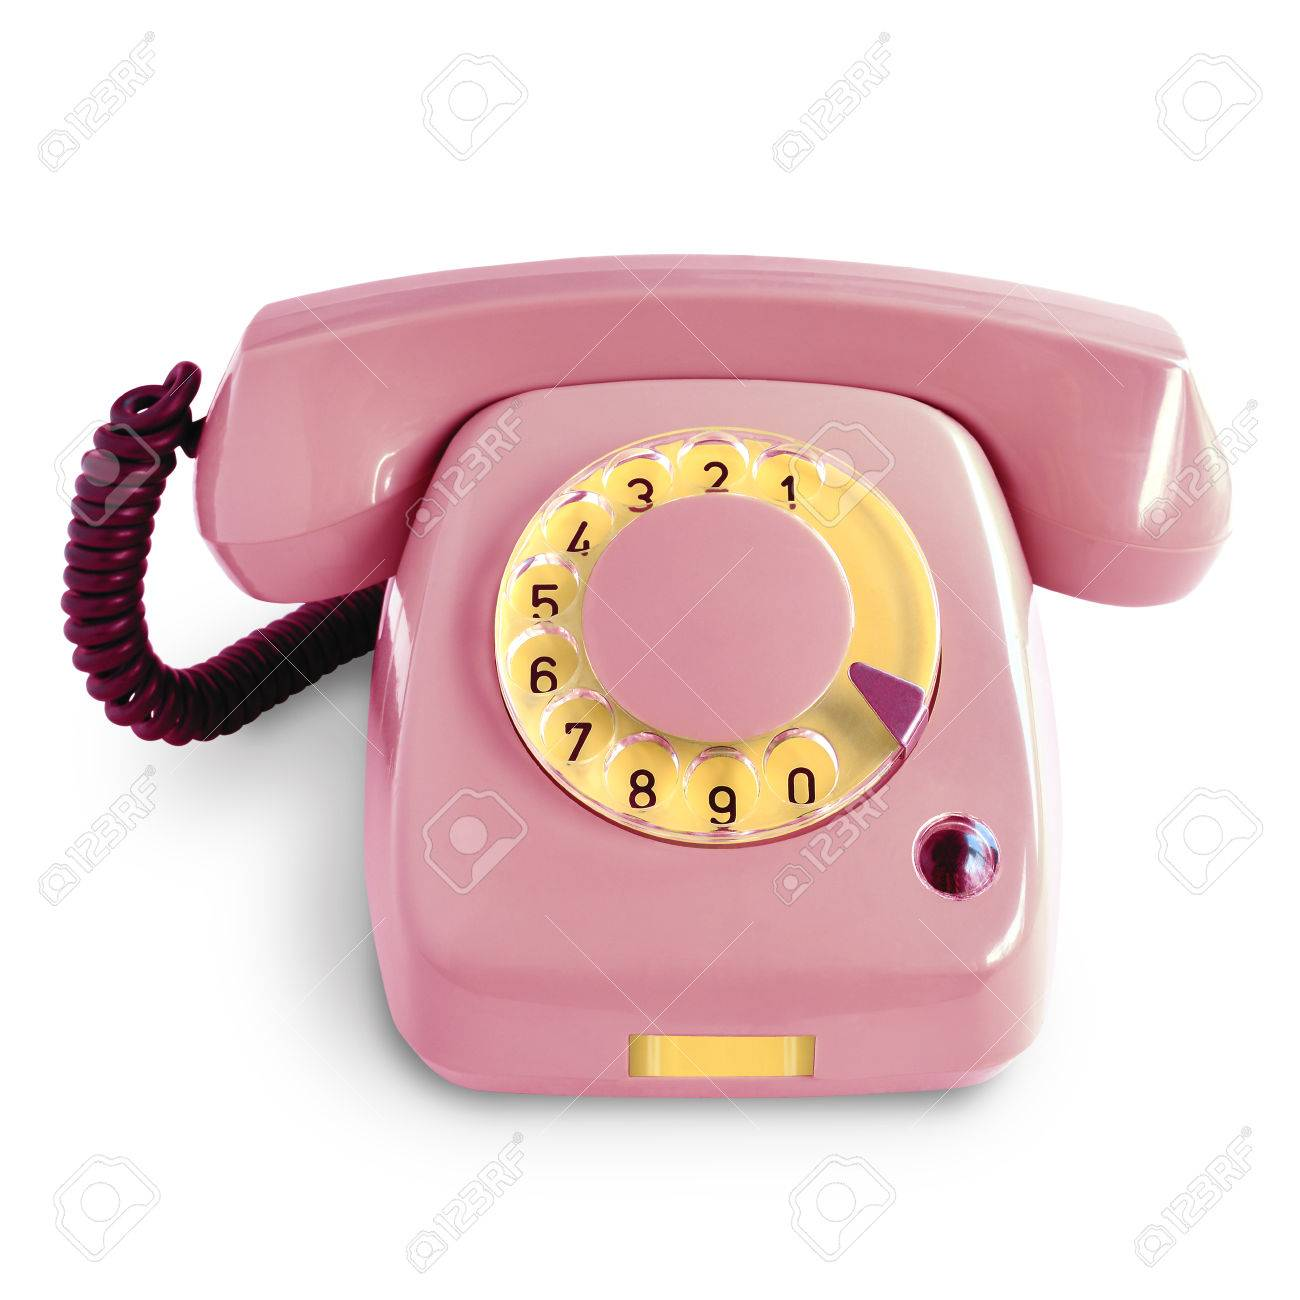 hight resolution of stock photo vintage pink telephone with rotary dial isolated on white background